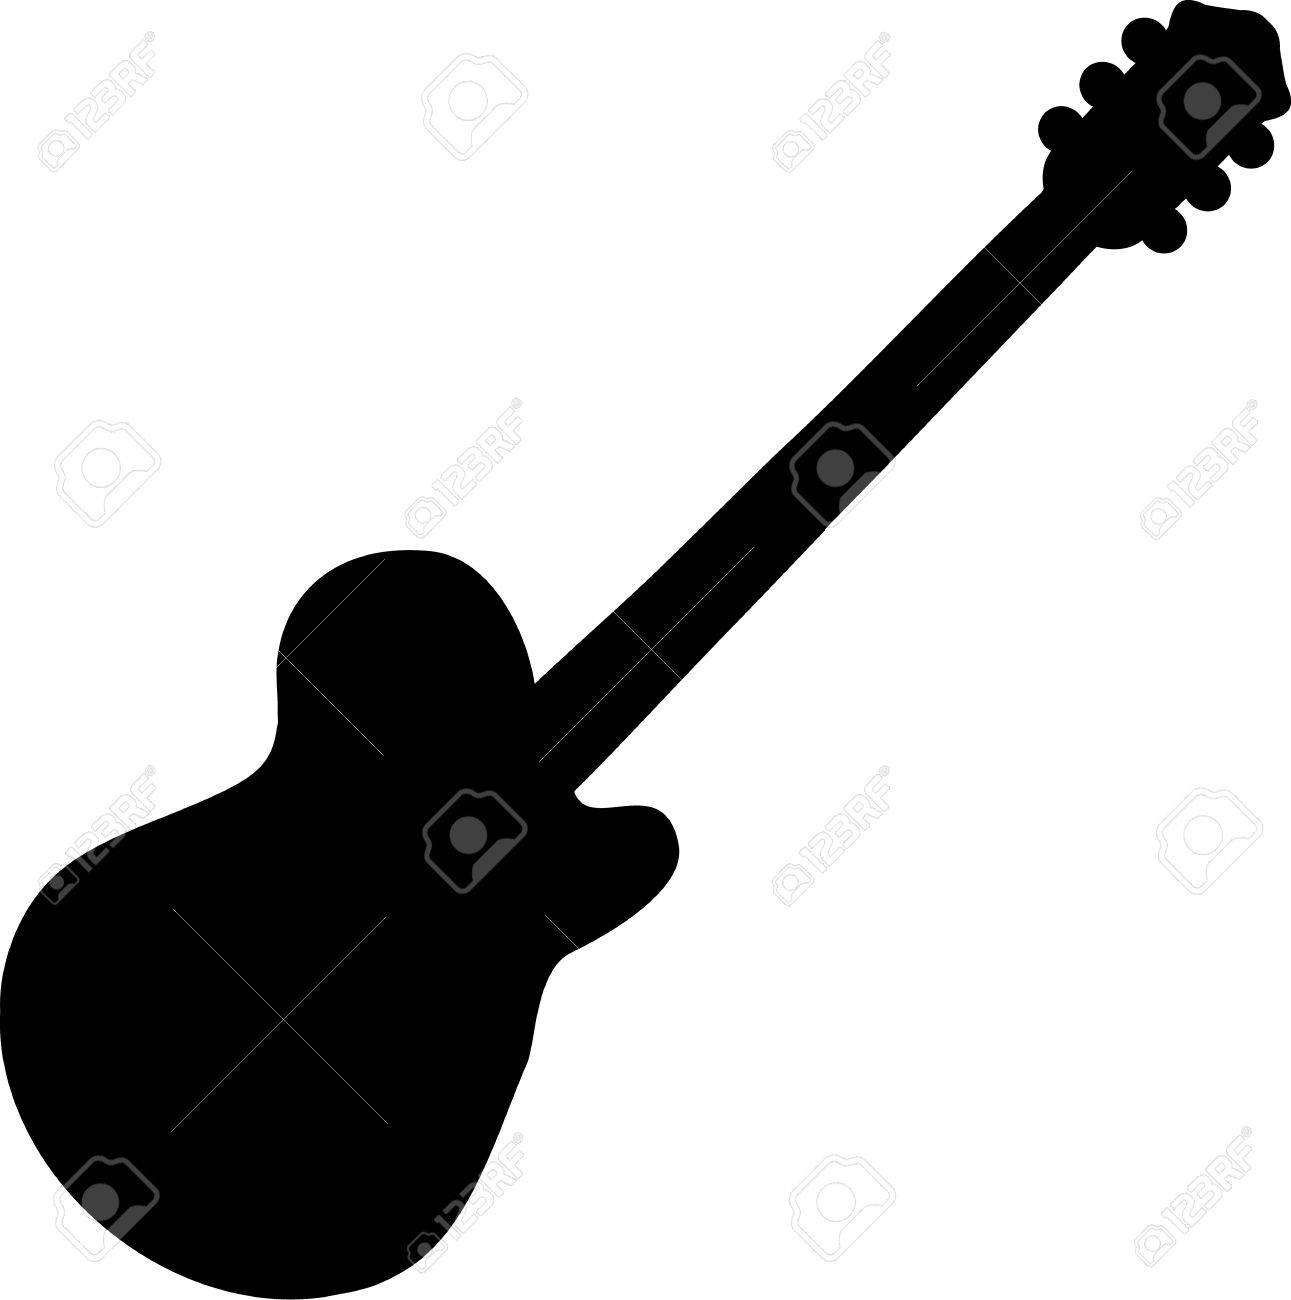 electric guitar silhouette royalty free cliparts vectors and stock